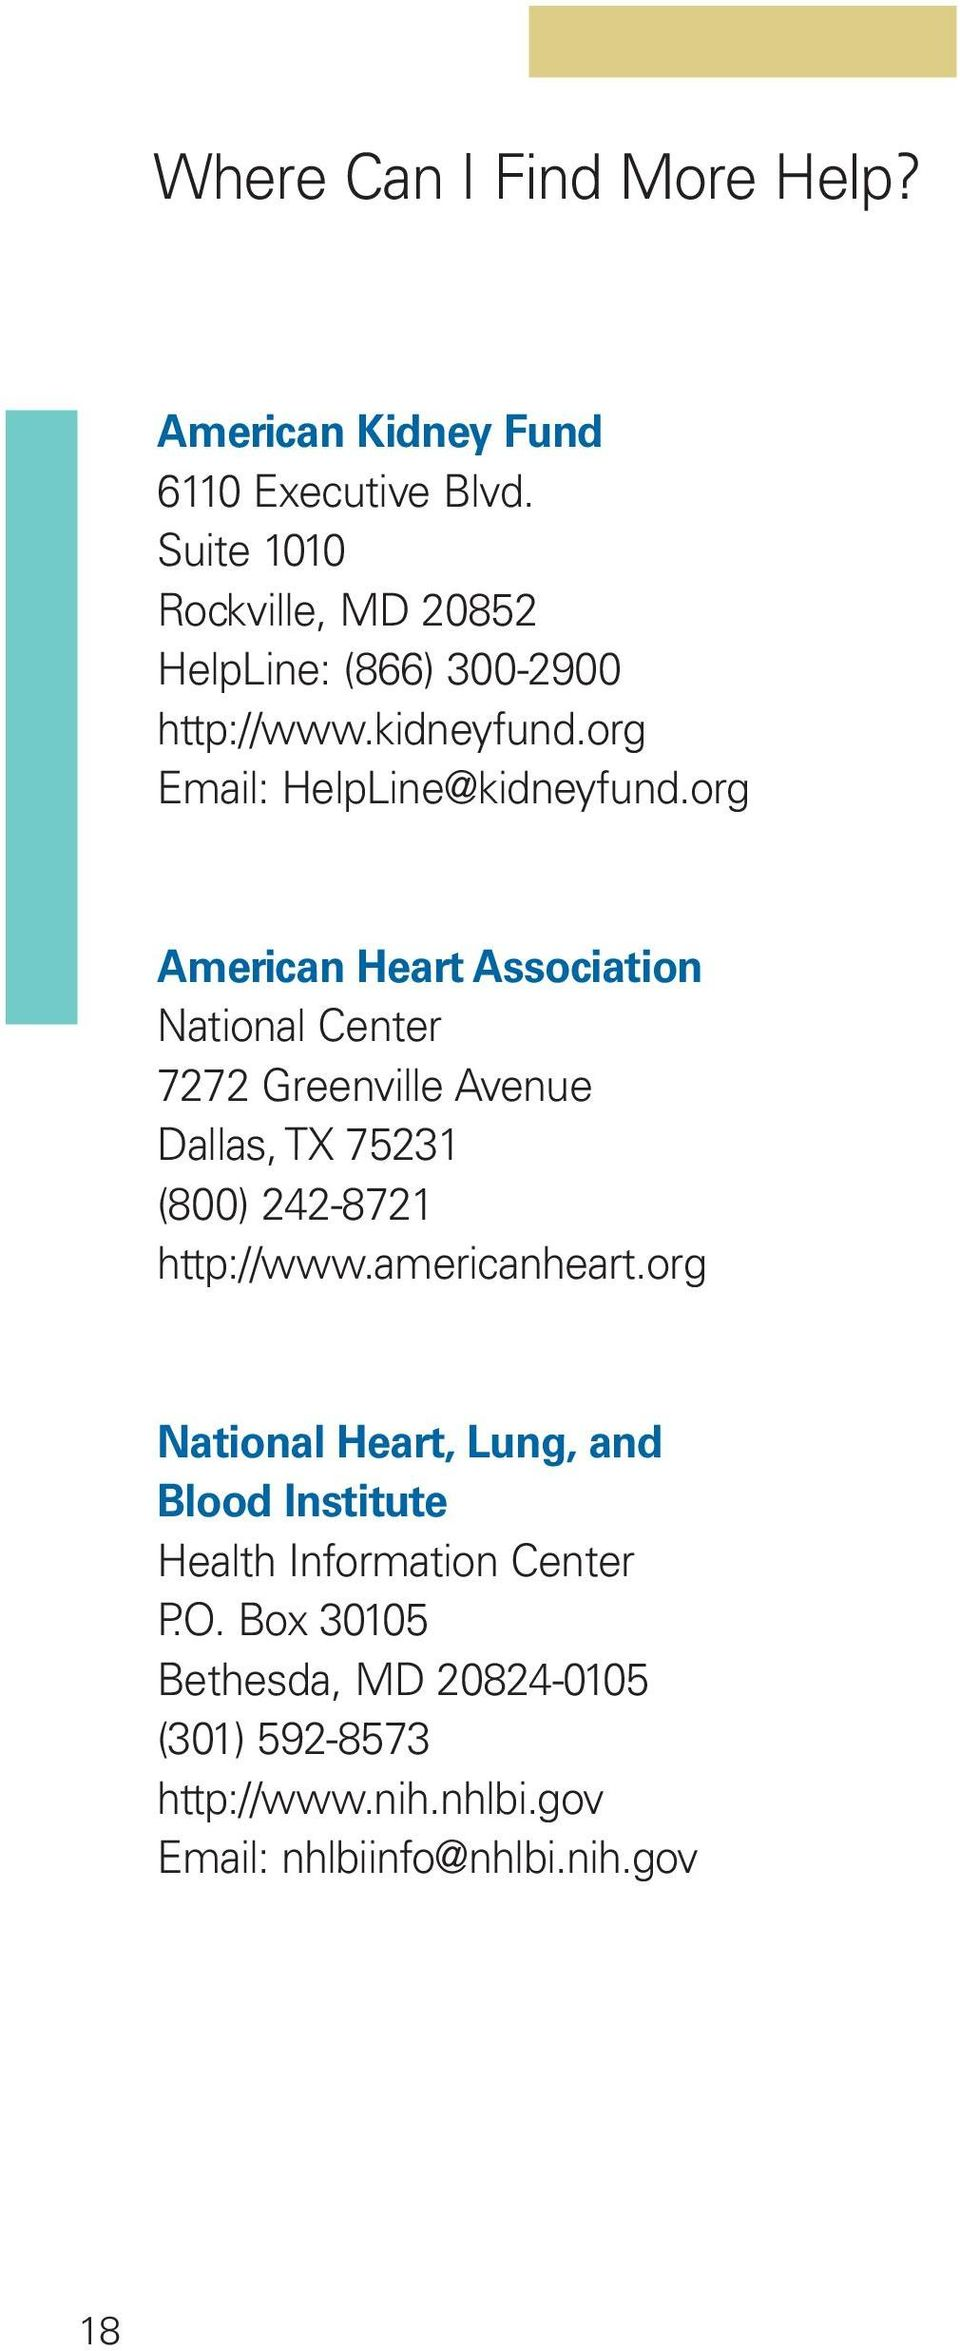 org American Heart Association National Center 7272 Greenville Avenue Dallas, TX 75231 (800) 242-8721 http://www.